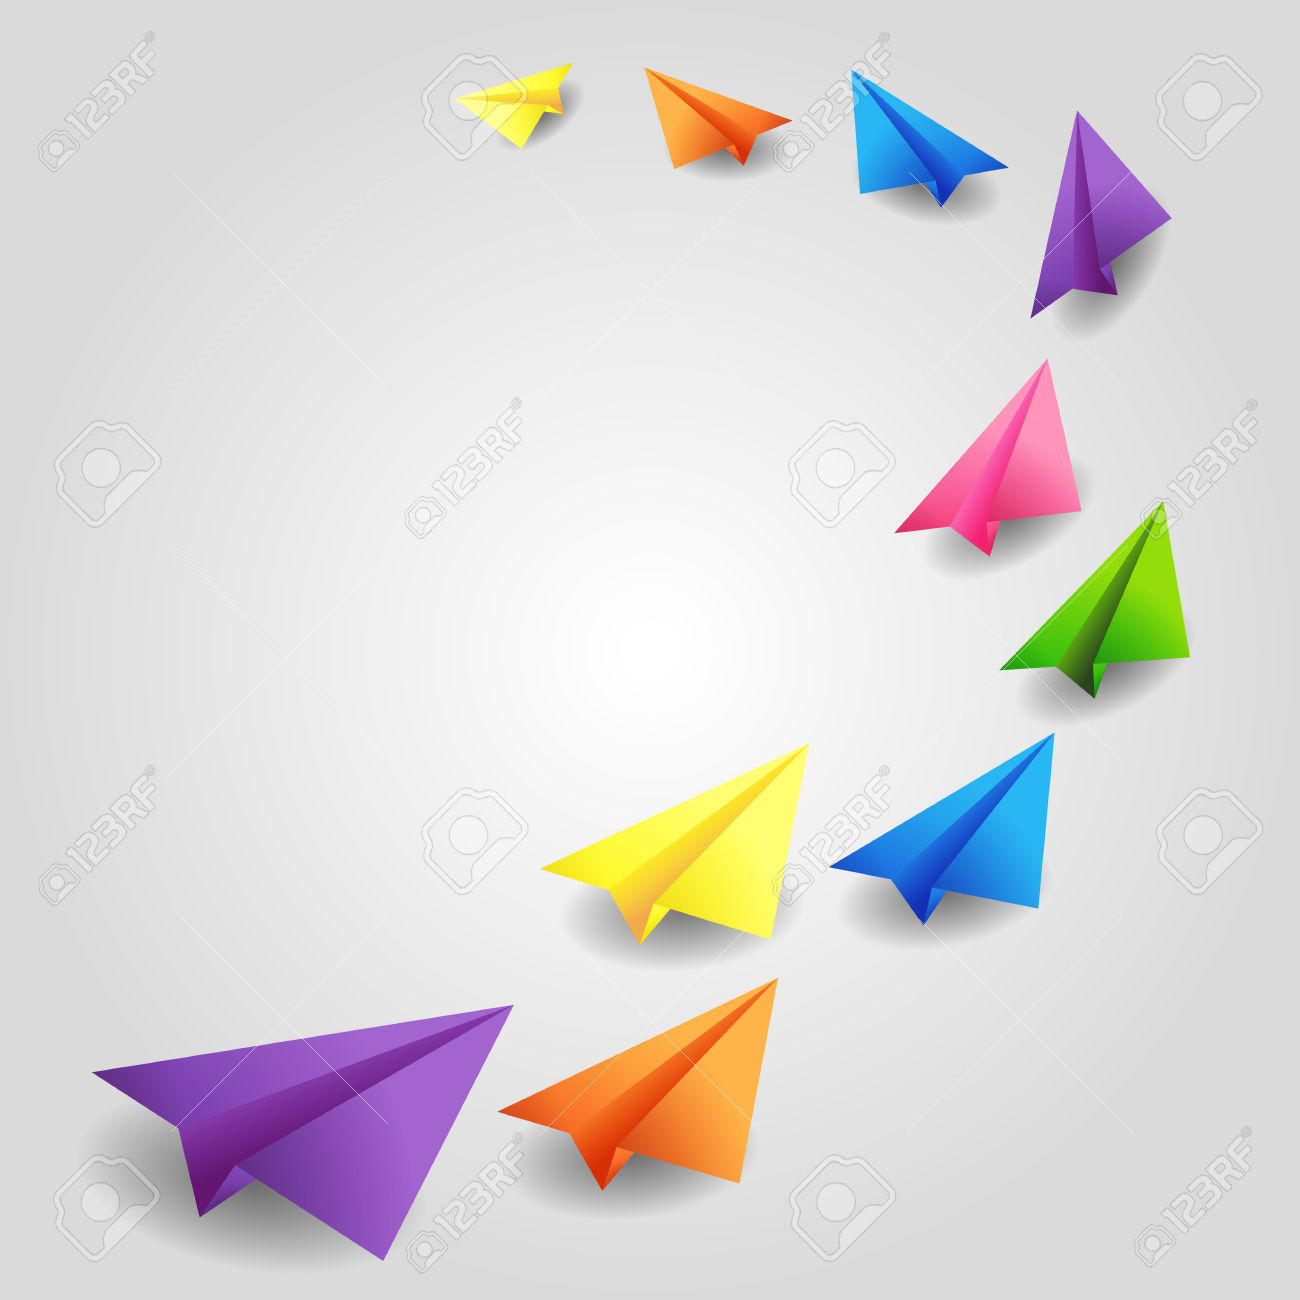 Image result for paper planes